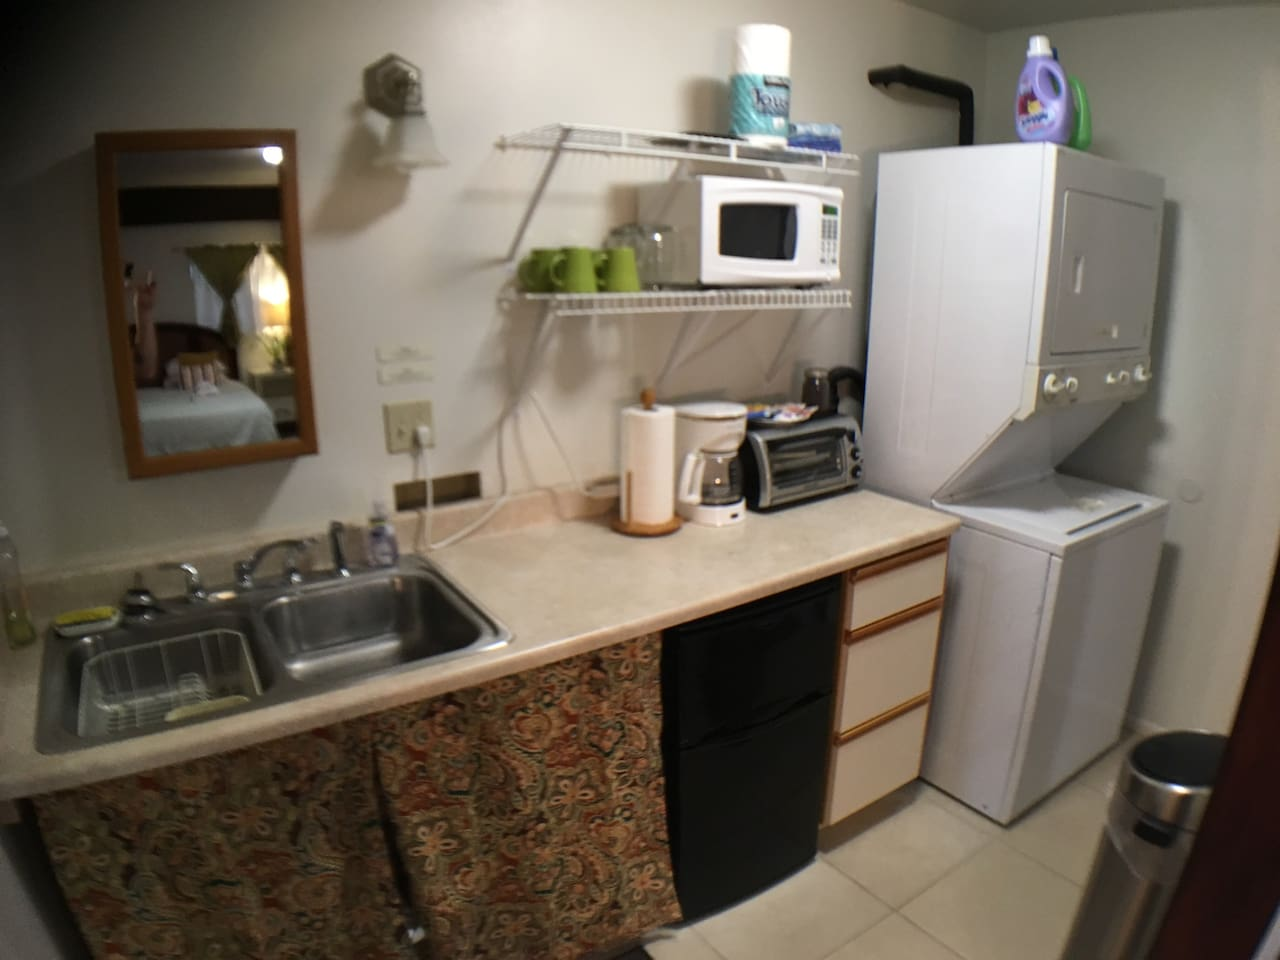 Kitchenette with Clothes Washer/Dryer